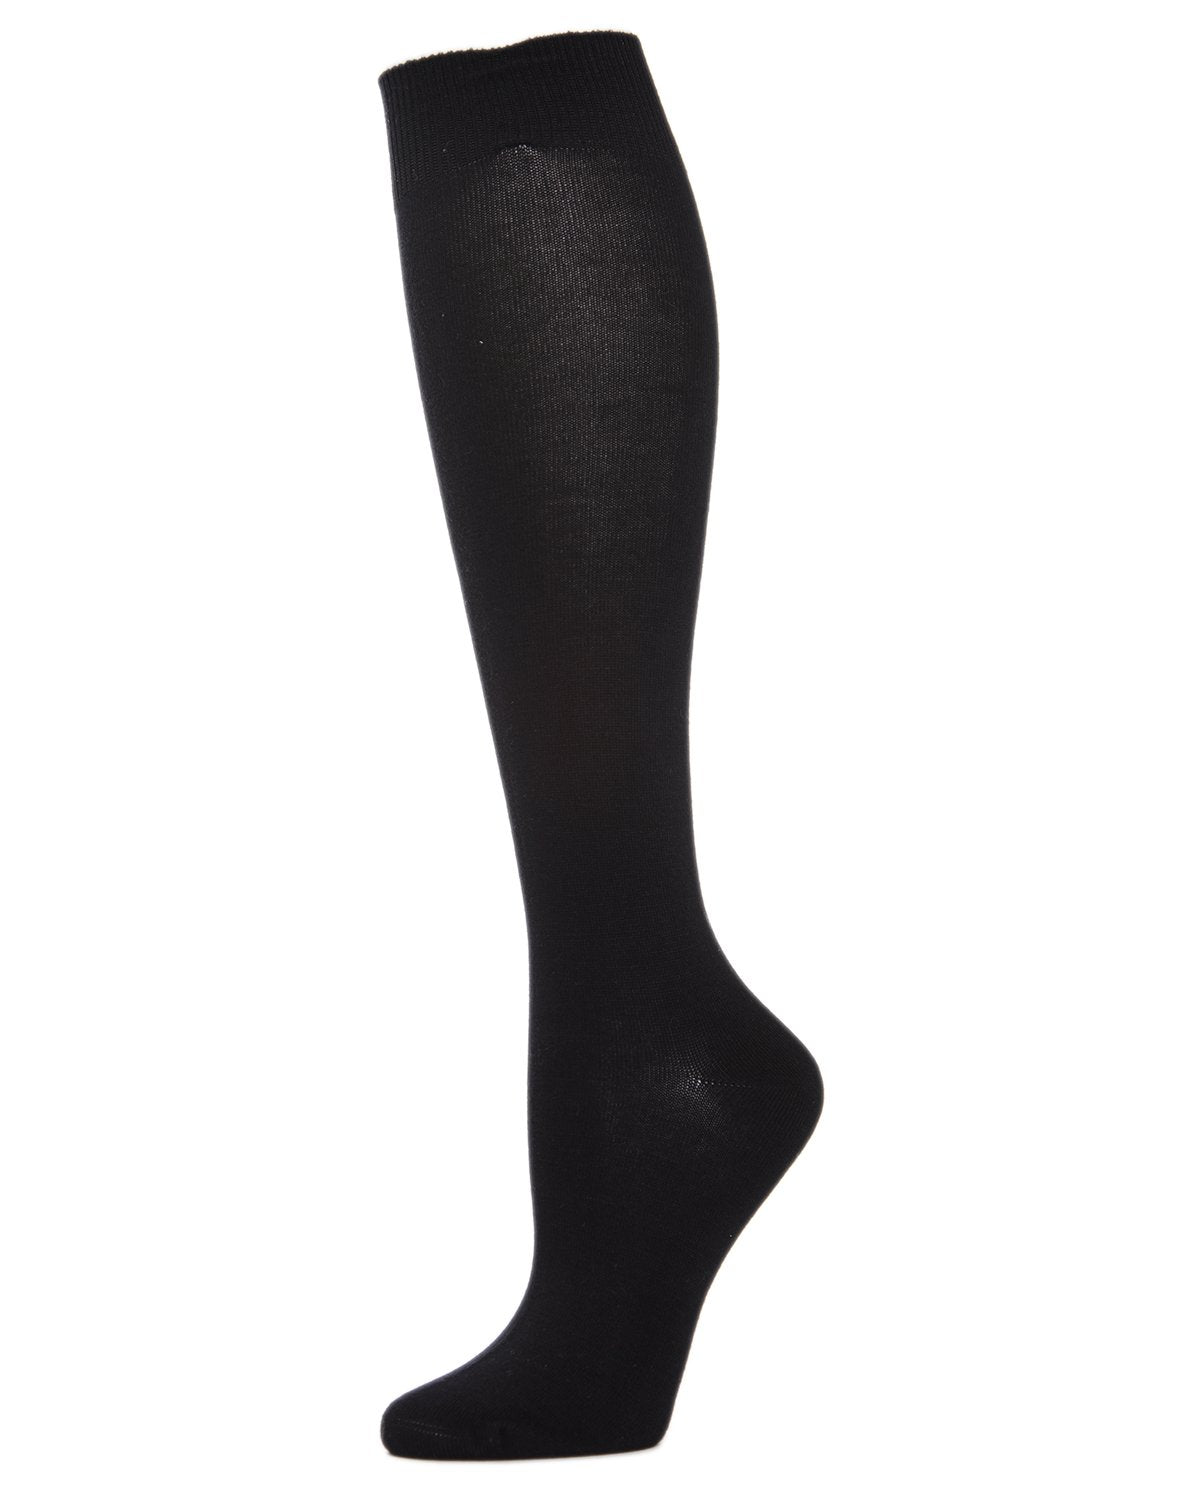 Bamboo Blend Solid Knit Knee High Socks